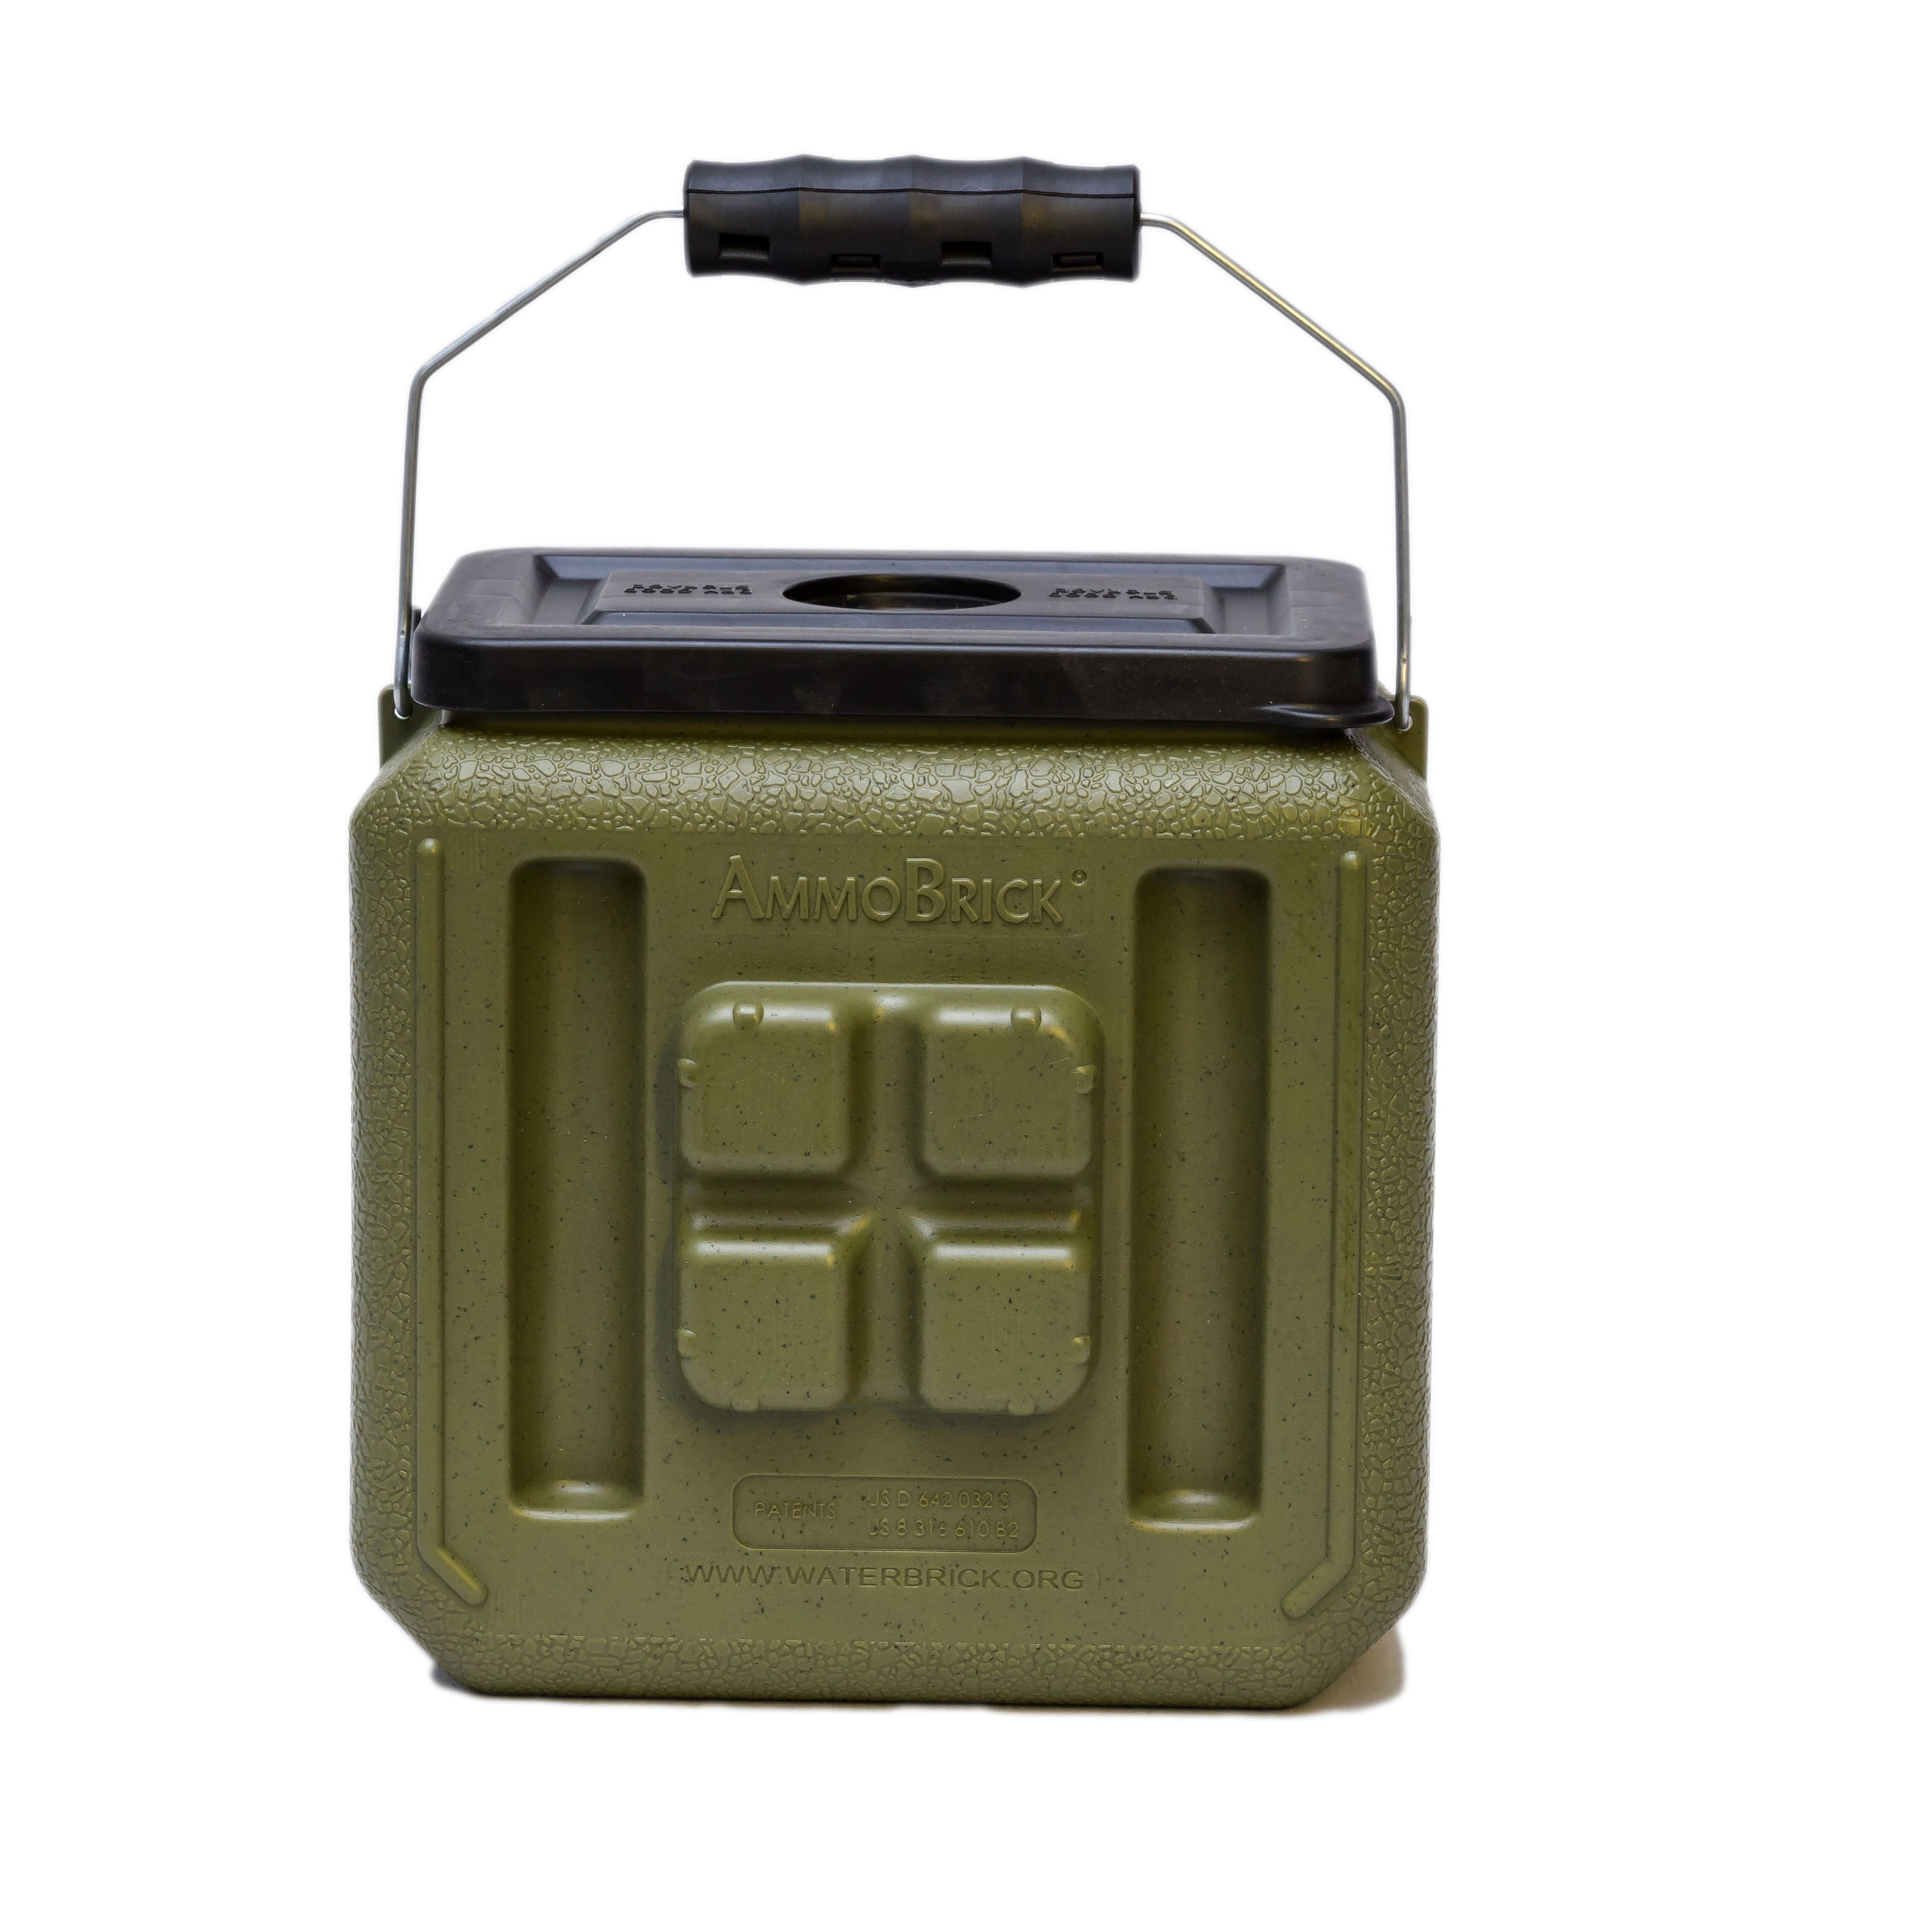 Shop WaterBrick AmmoBrick 16 gal Stackable Ammo Storage Container